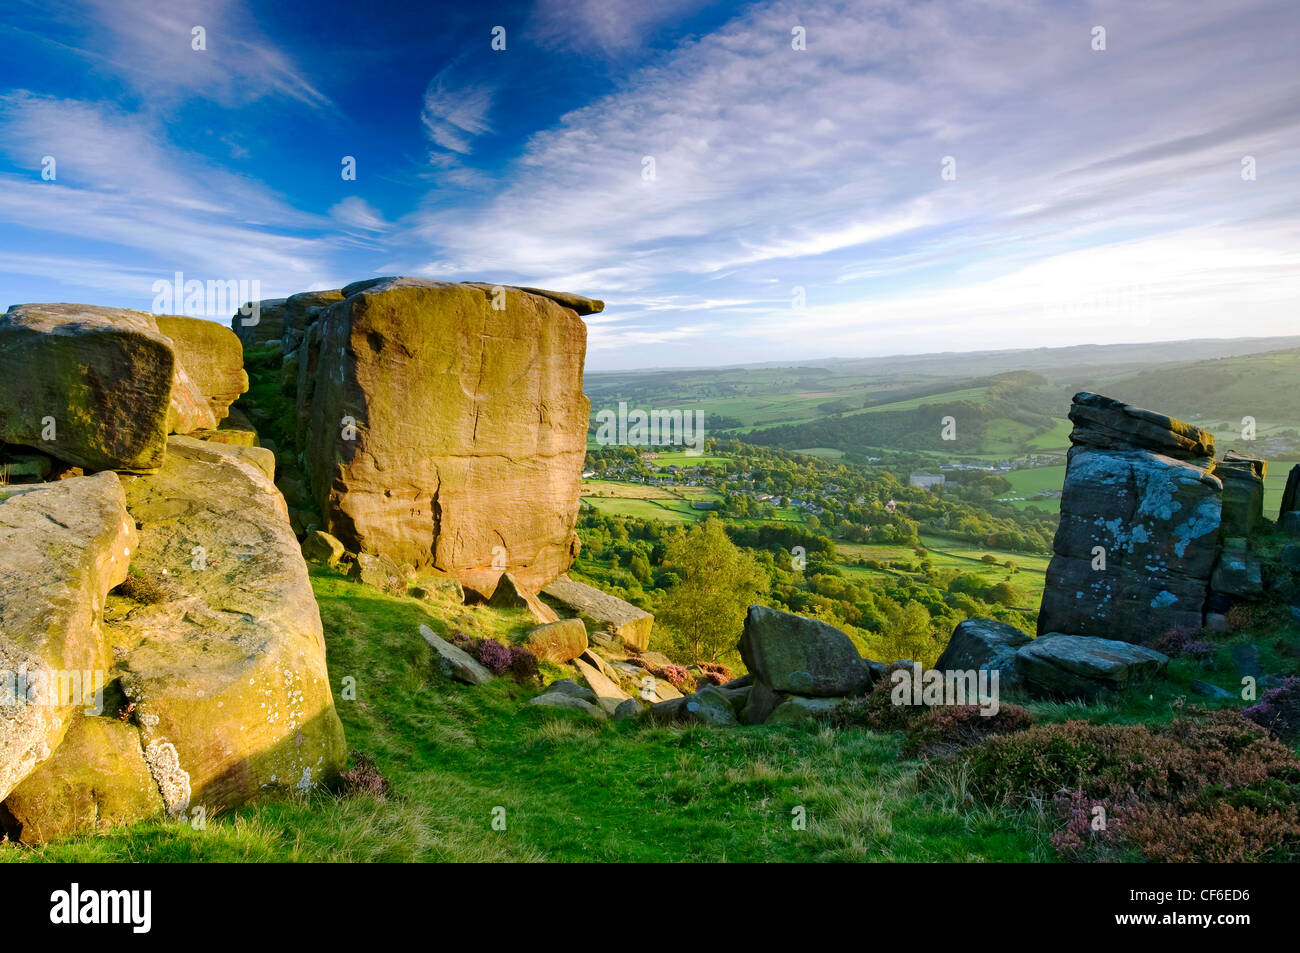 View from Curbar Edge, a gritstone escarpment in the Dark Peak area of the Peak District National Park. - Stock Image